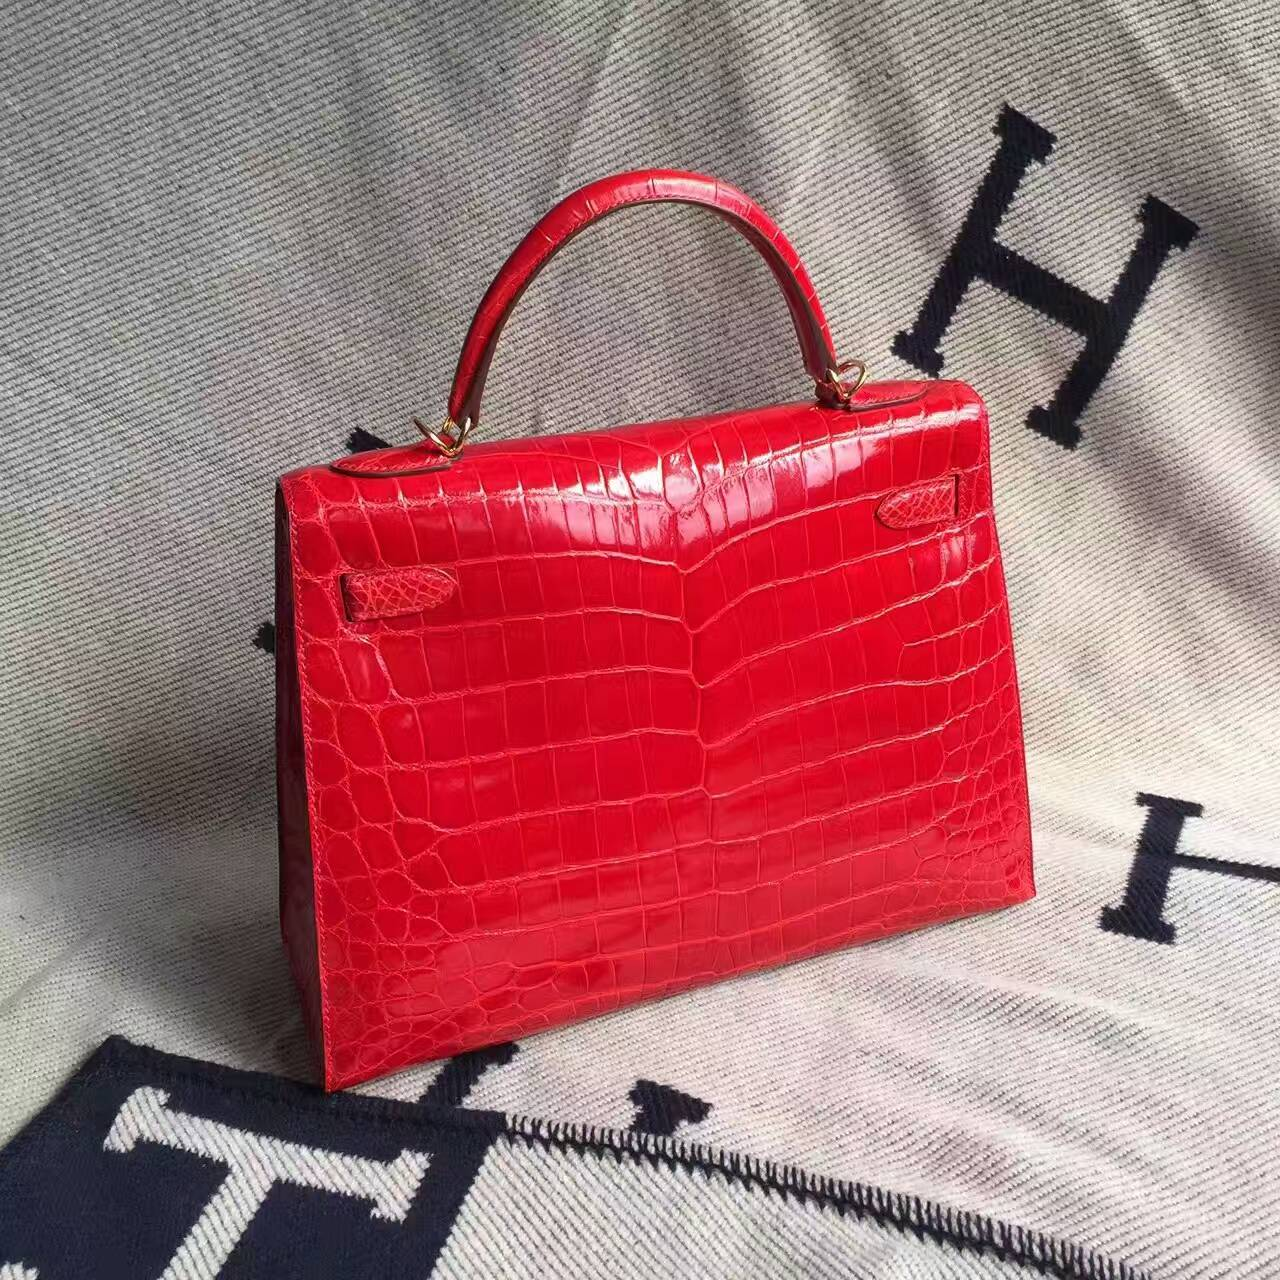 Hand Stitching Hermes Crocodile Shiny Leather Kelly Bag 32CM in CK95 Braise